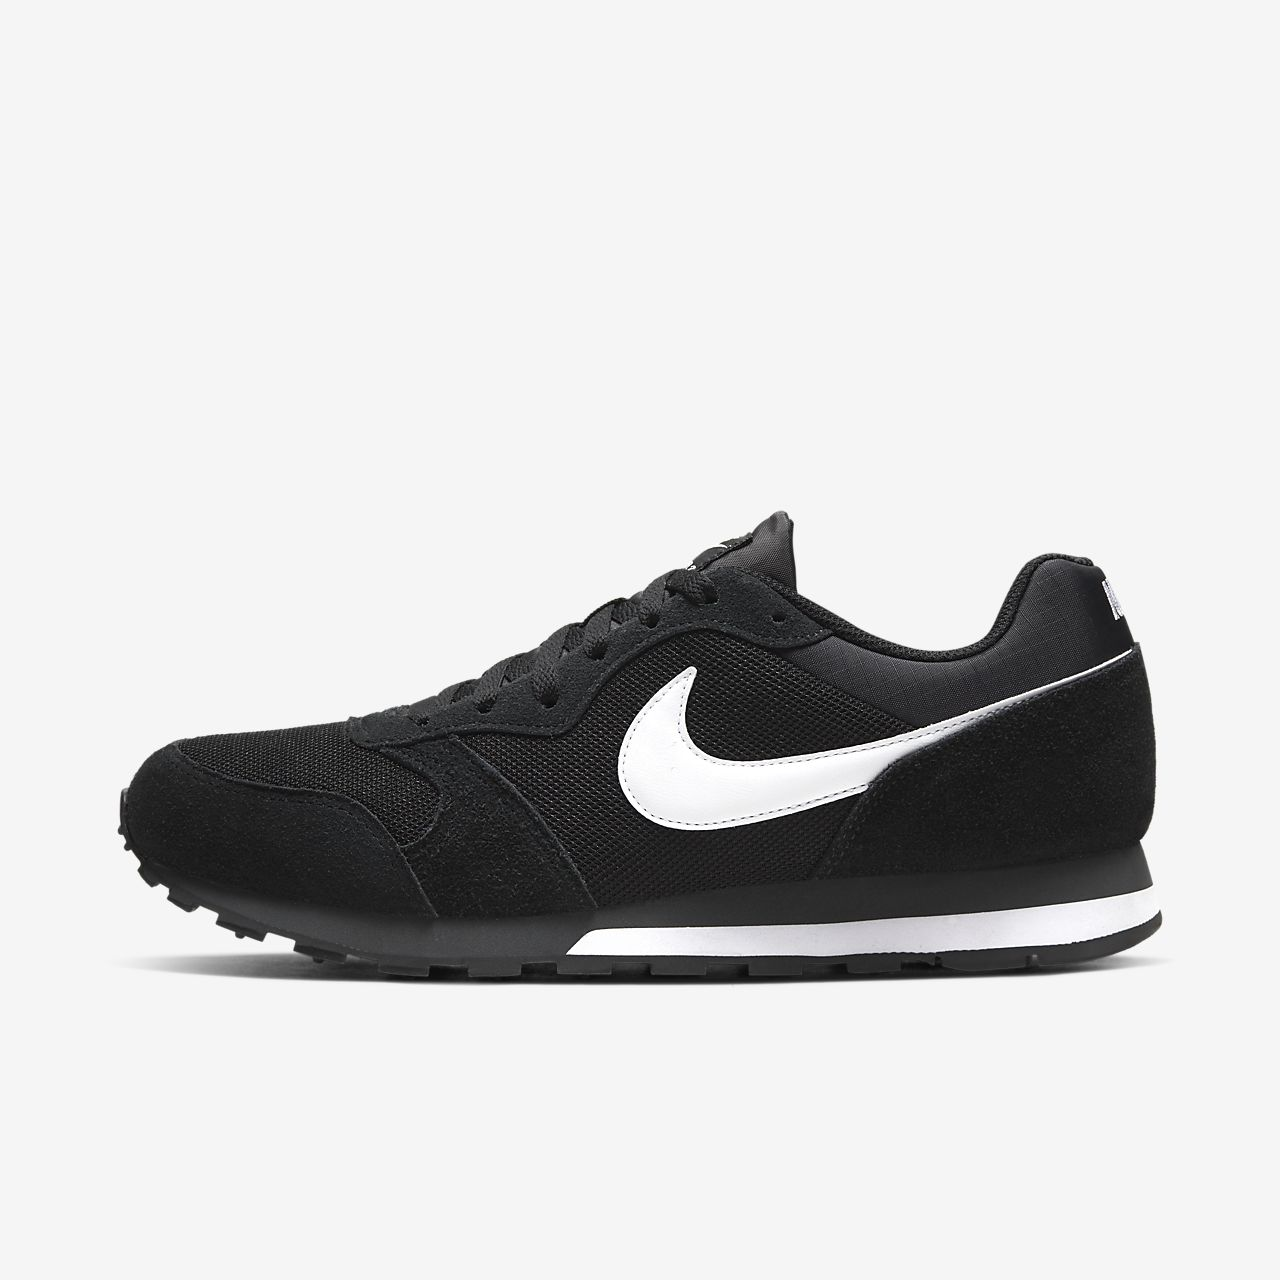 a06ec0800a6 Nike MD Runner 2 Herenschoen. Nike.com BE